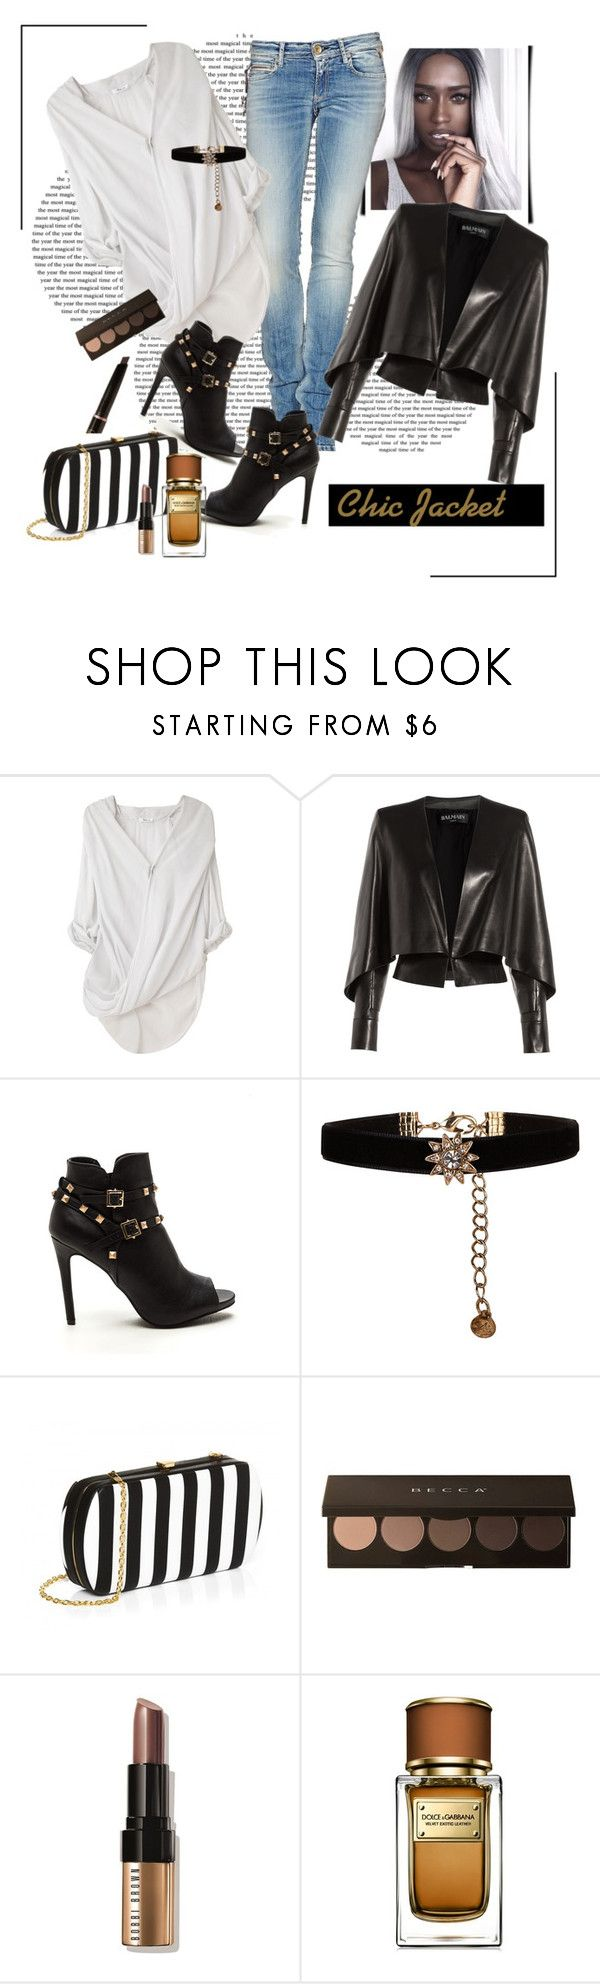 """*Jacket  ""Chic"" contest *- Set #1"" by sassy-elisa ❤ liked on Polyvore featuring Helmut Lang, Balmain, Accessorize, Bobbi Brown Cosmetics, Dolce&Gabbana, Anastasia Beverly Hills, chic, leatherjacket, jacket and shirt"